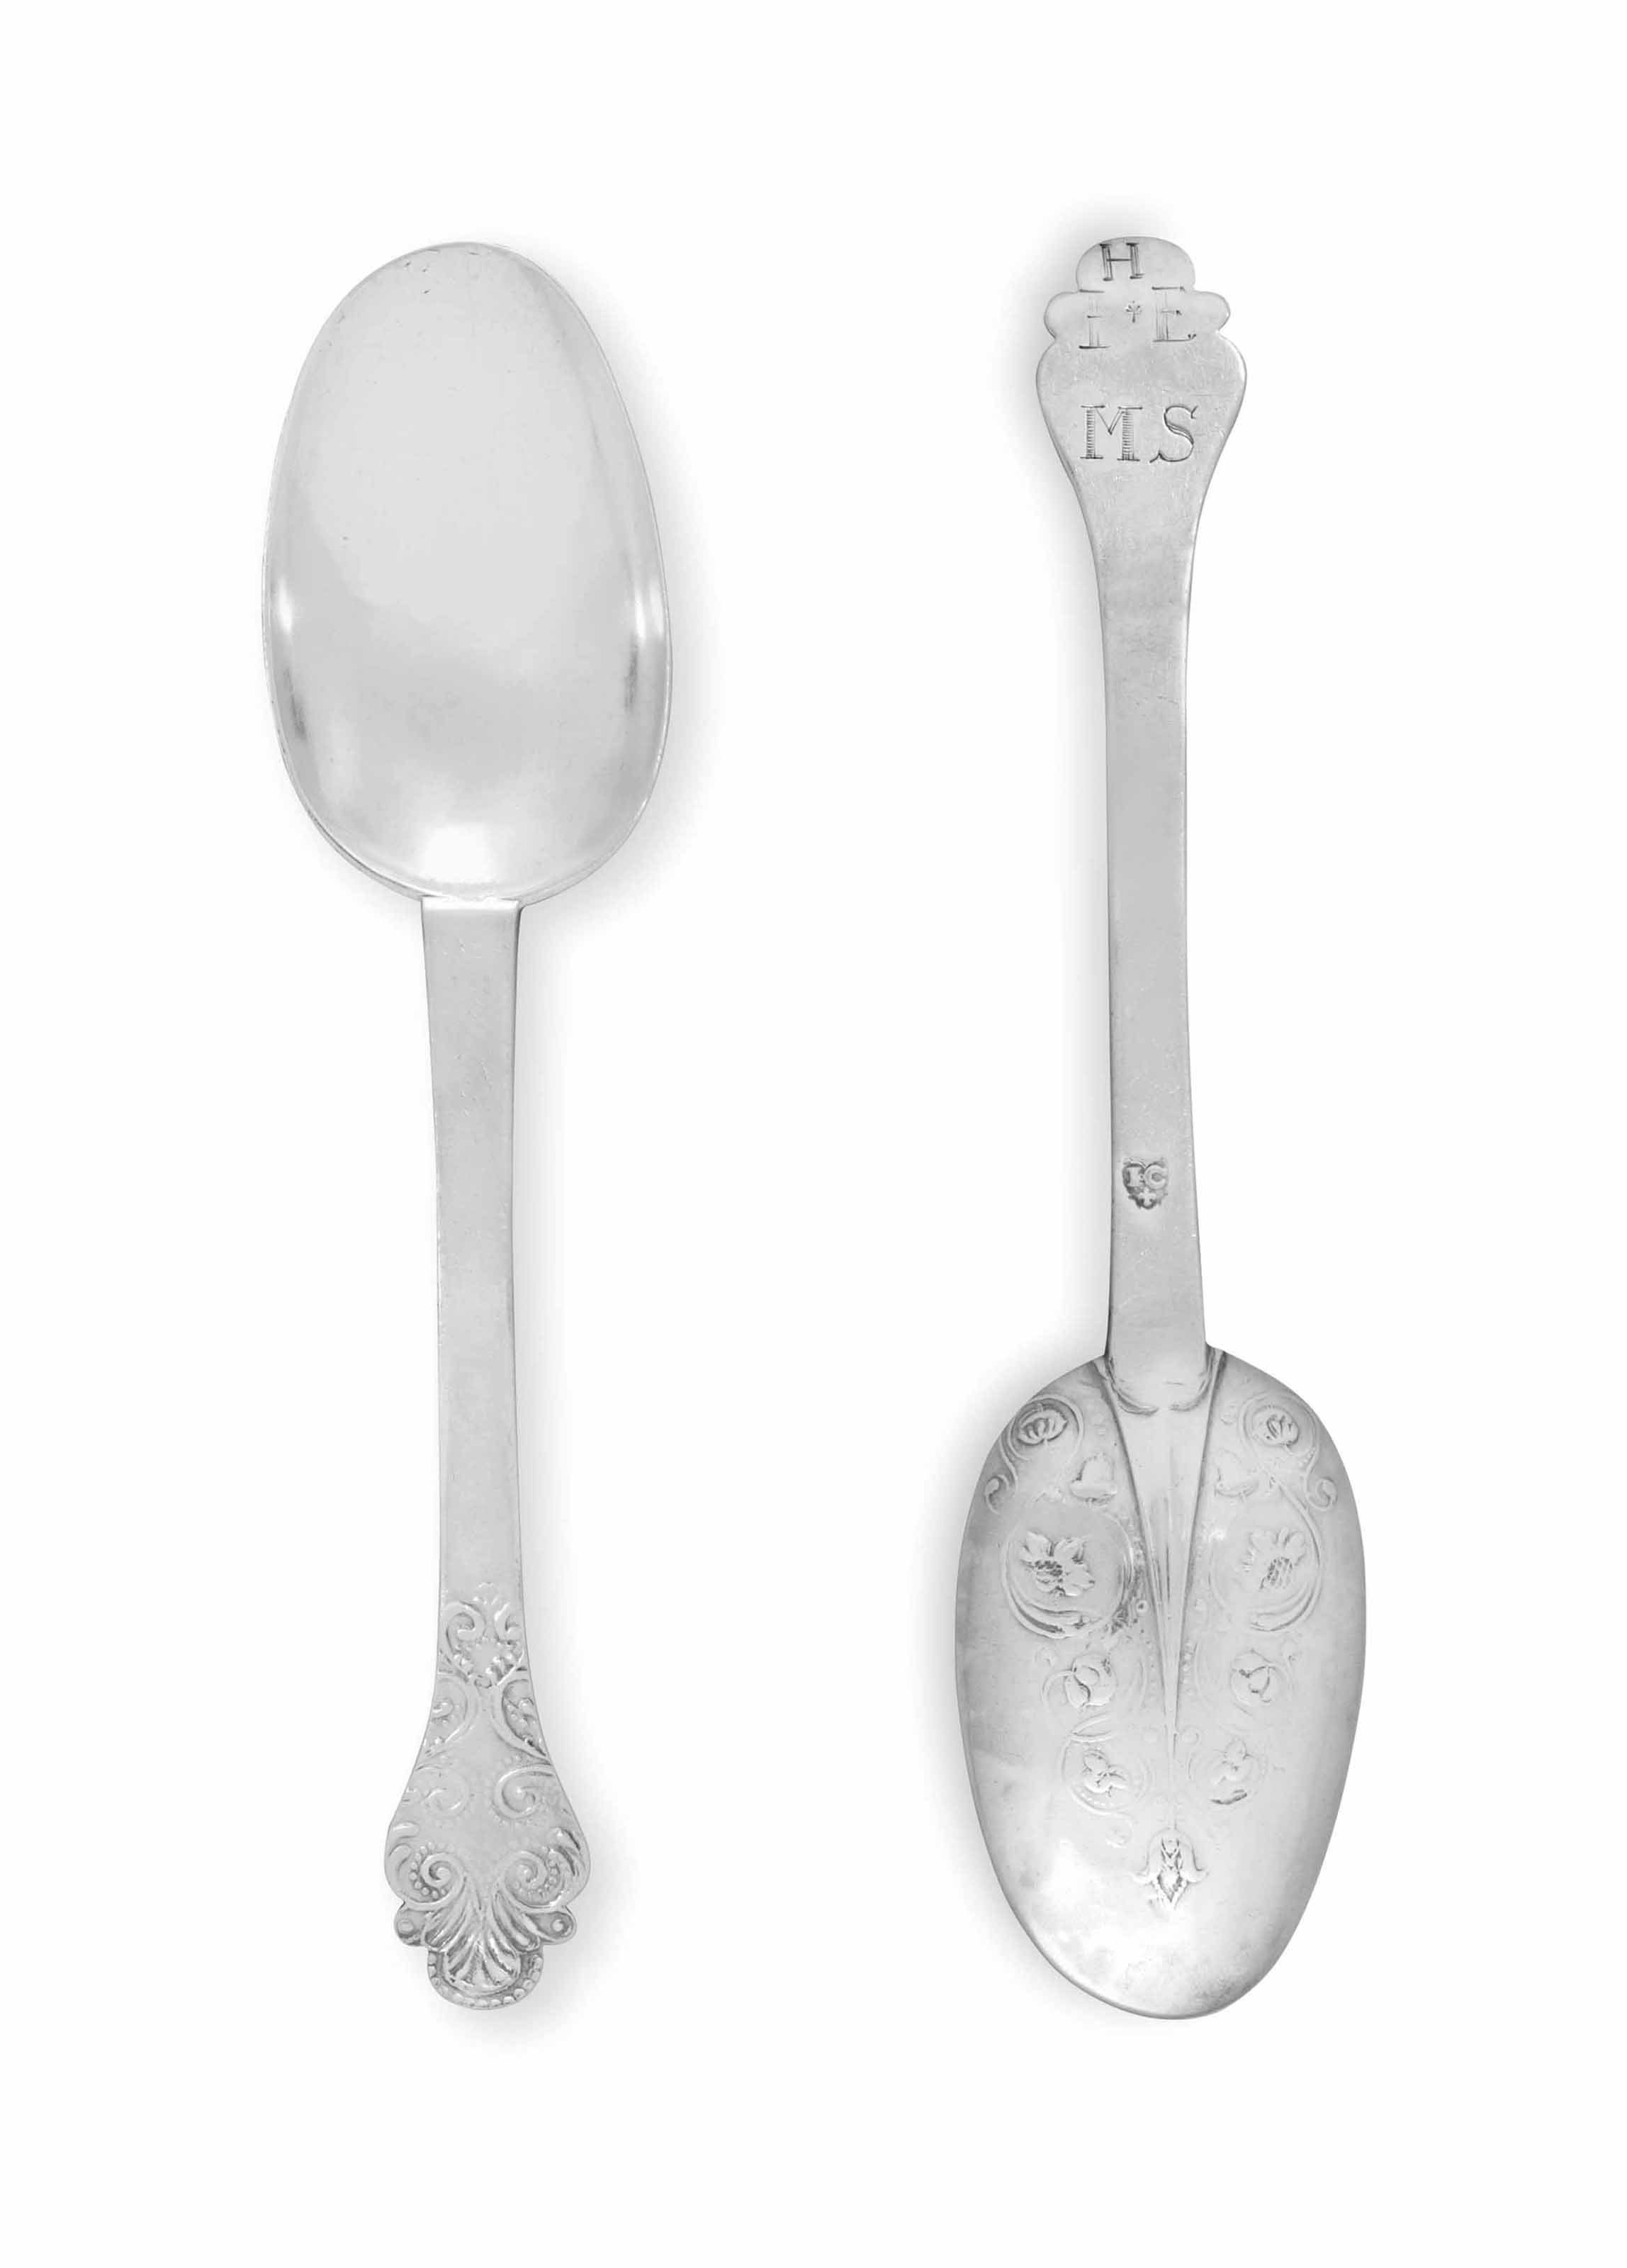 A FINE SILVER TABLESPOON